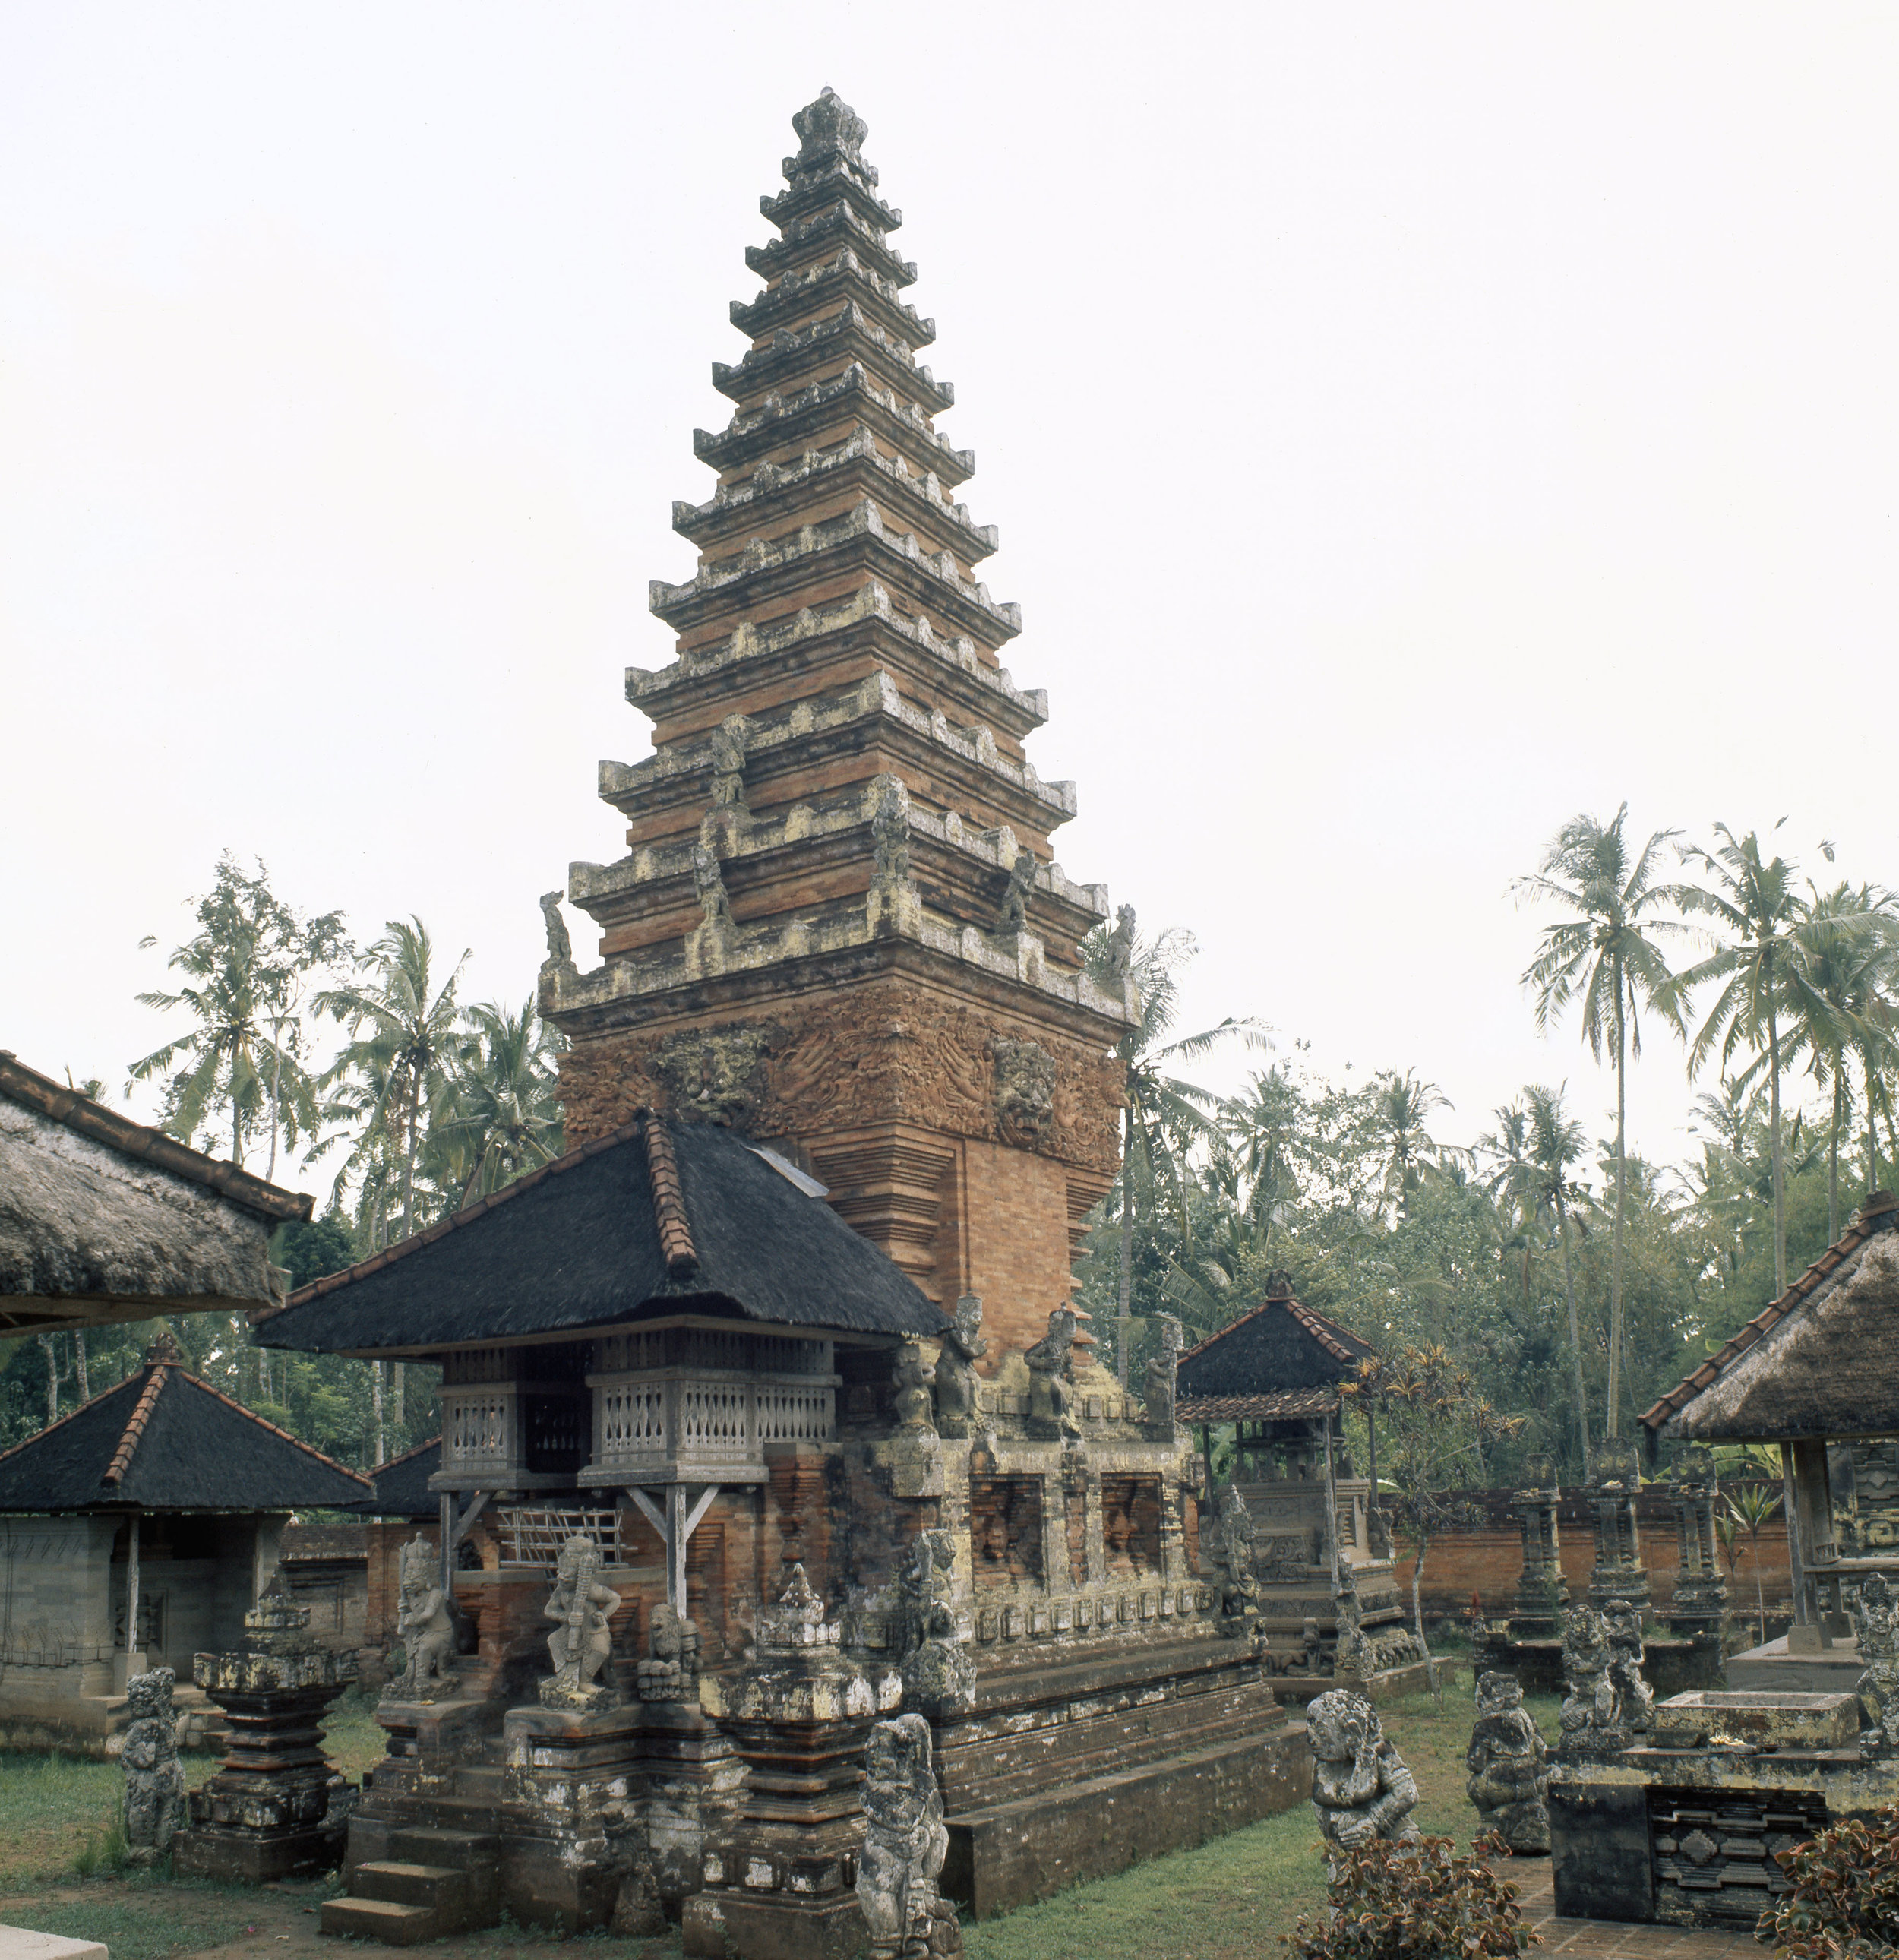 The tiered structure of Balinese Hindu shrines reproduces the three levels of the cosmos: the under-world, the world of humanity and the towering celestial mountain of the gods. Country of Origin: Indonesia. Culture: Balinese/Hindu. Place of Origin: Bali. Credit Line: Werner Forman Archive.